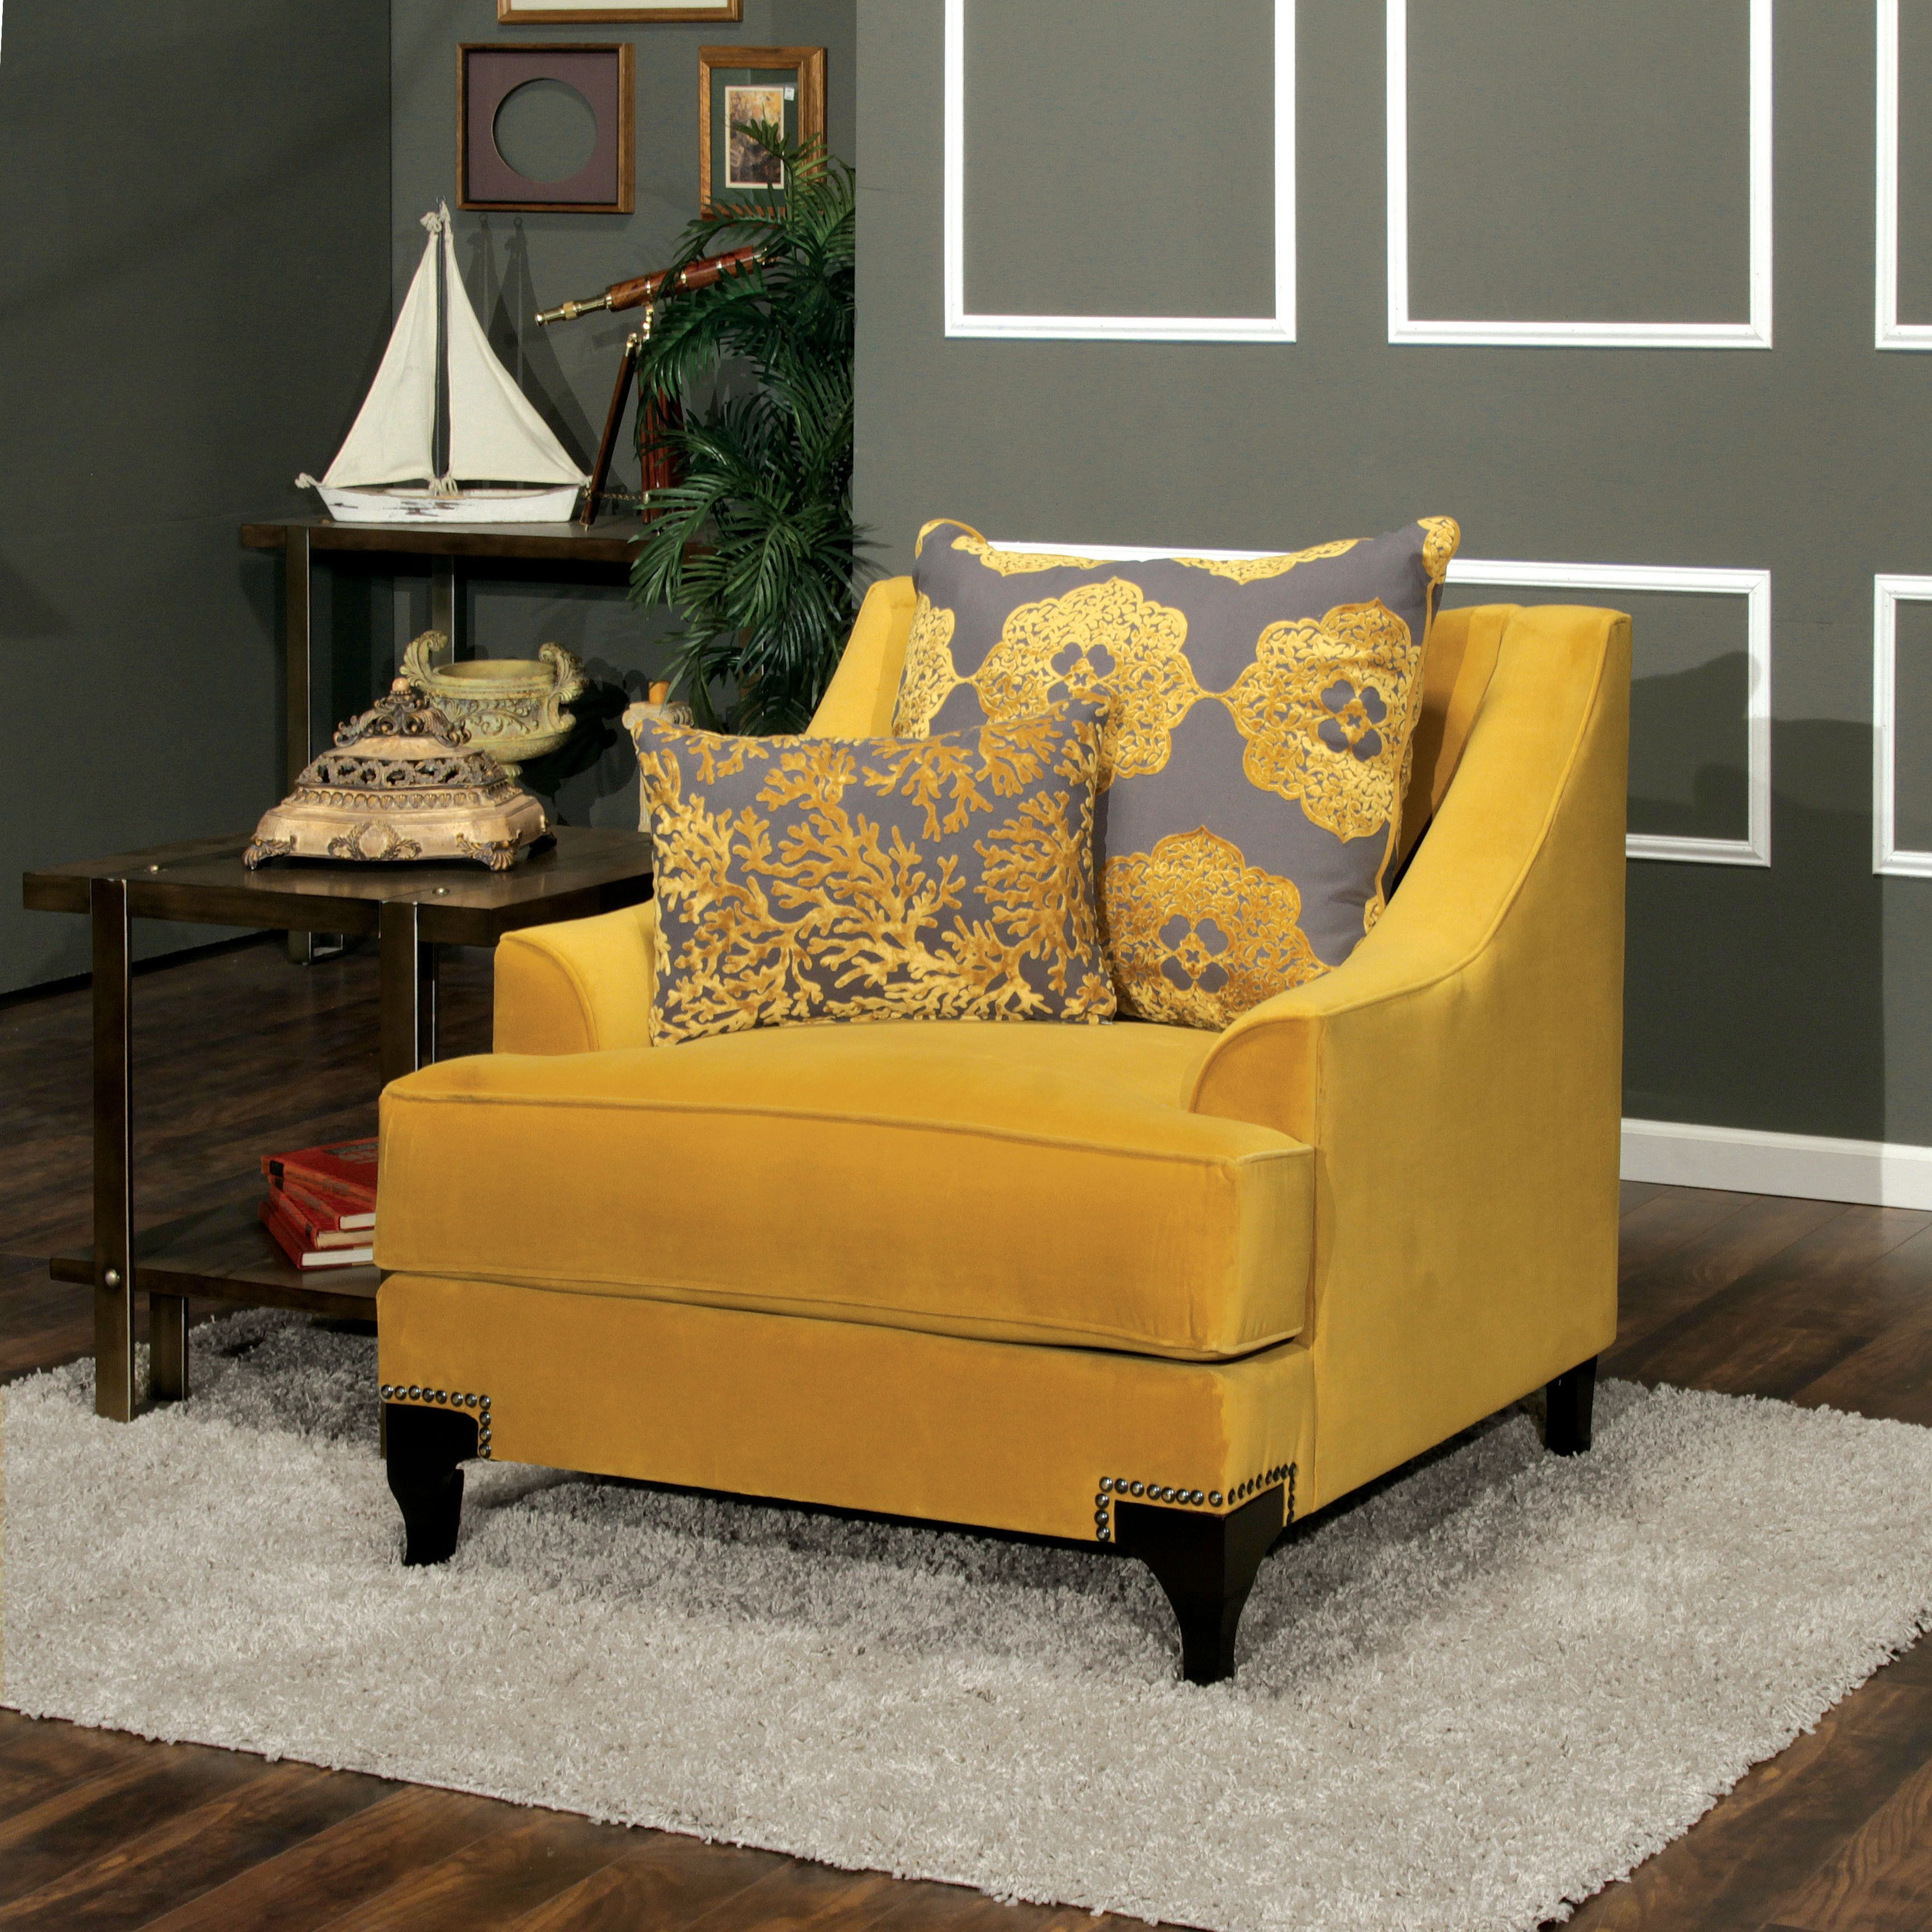 Furniture Store Online Usa: Bedding, Furniture, Electronics, Jewelry